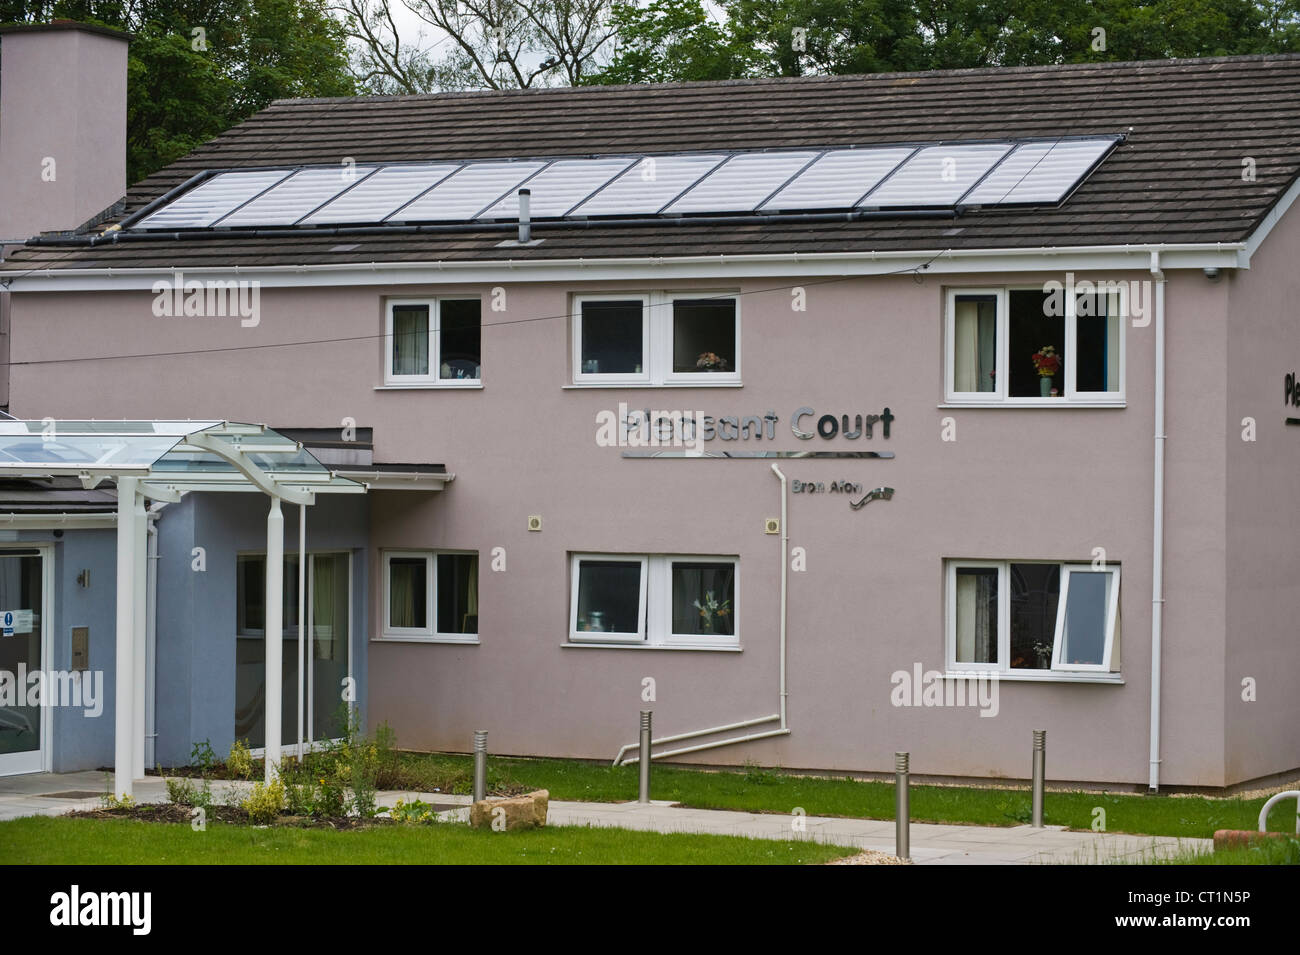 Solar panels on roof of senior citizen community housing at Pontnewynydd Pontypool Torfaen Gwent South Wales UK - Stock Image